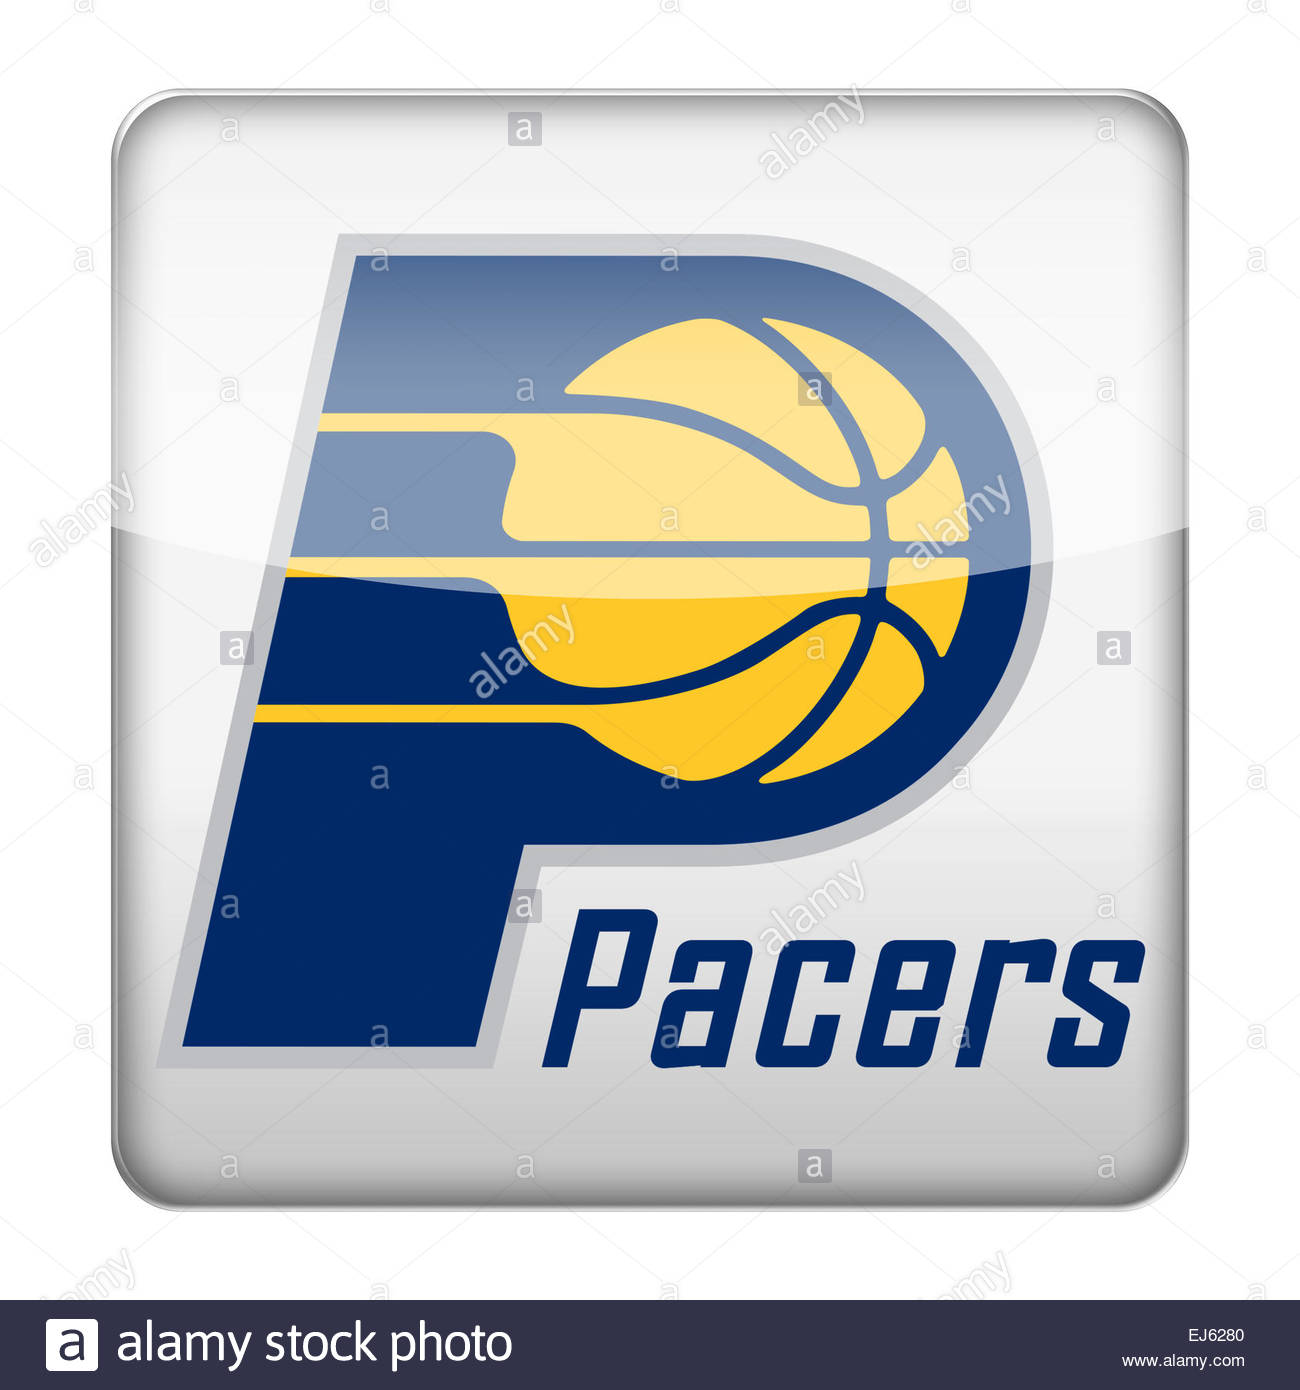 Indiana pacers logo icon stock photo royalty free image 80038784 indiana pacers logo icon voltagebd Gallery